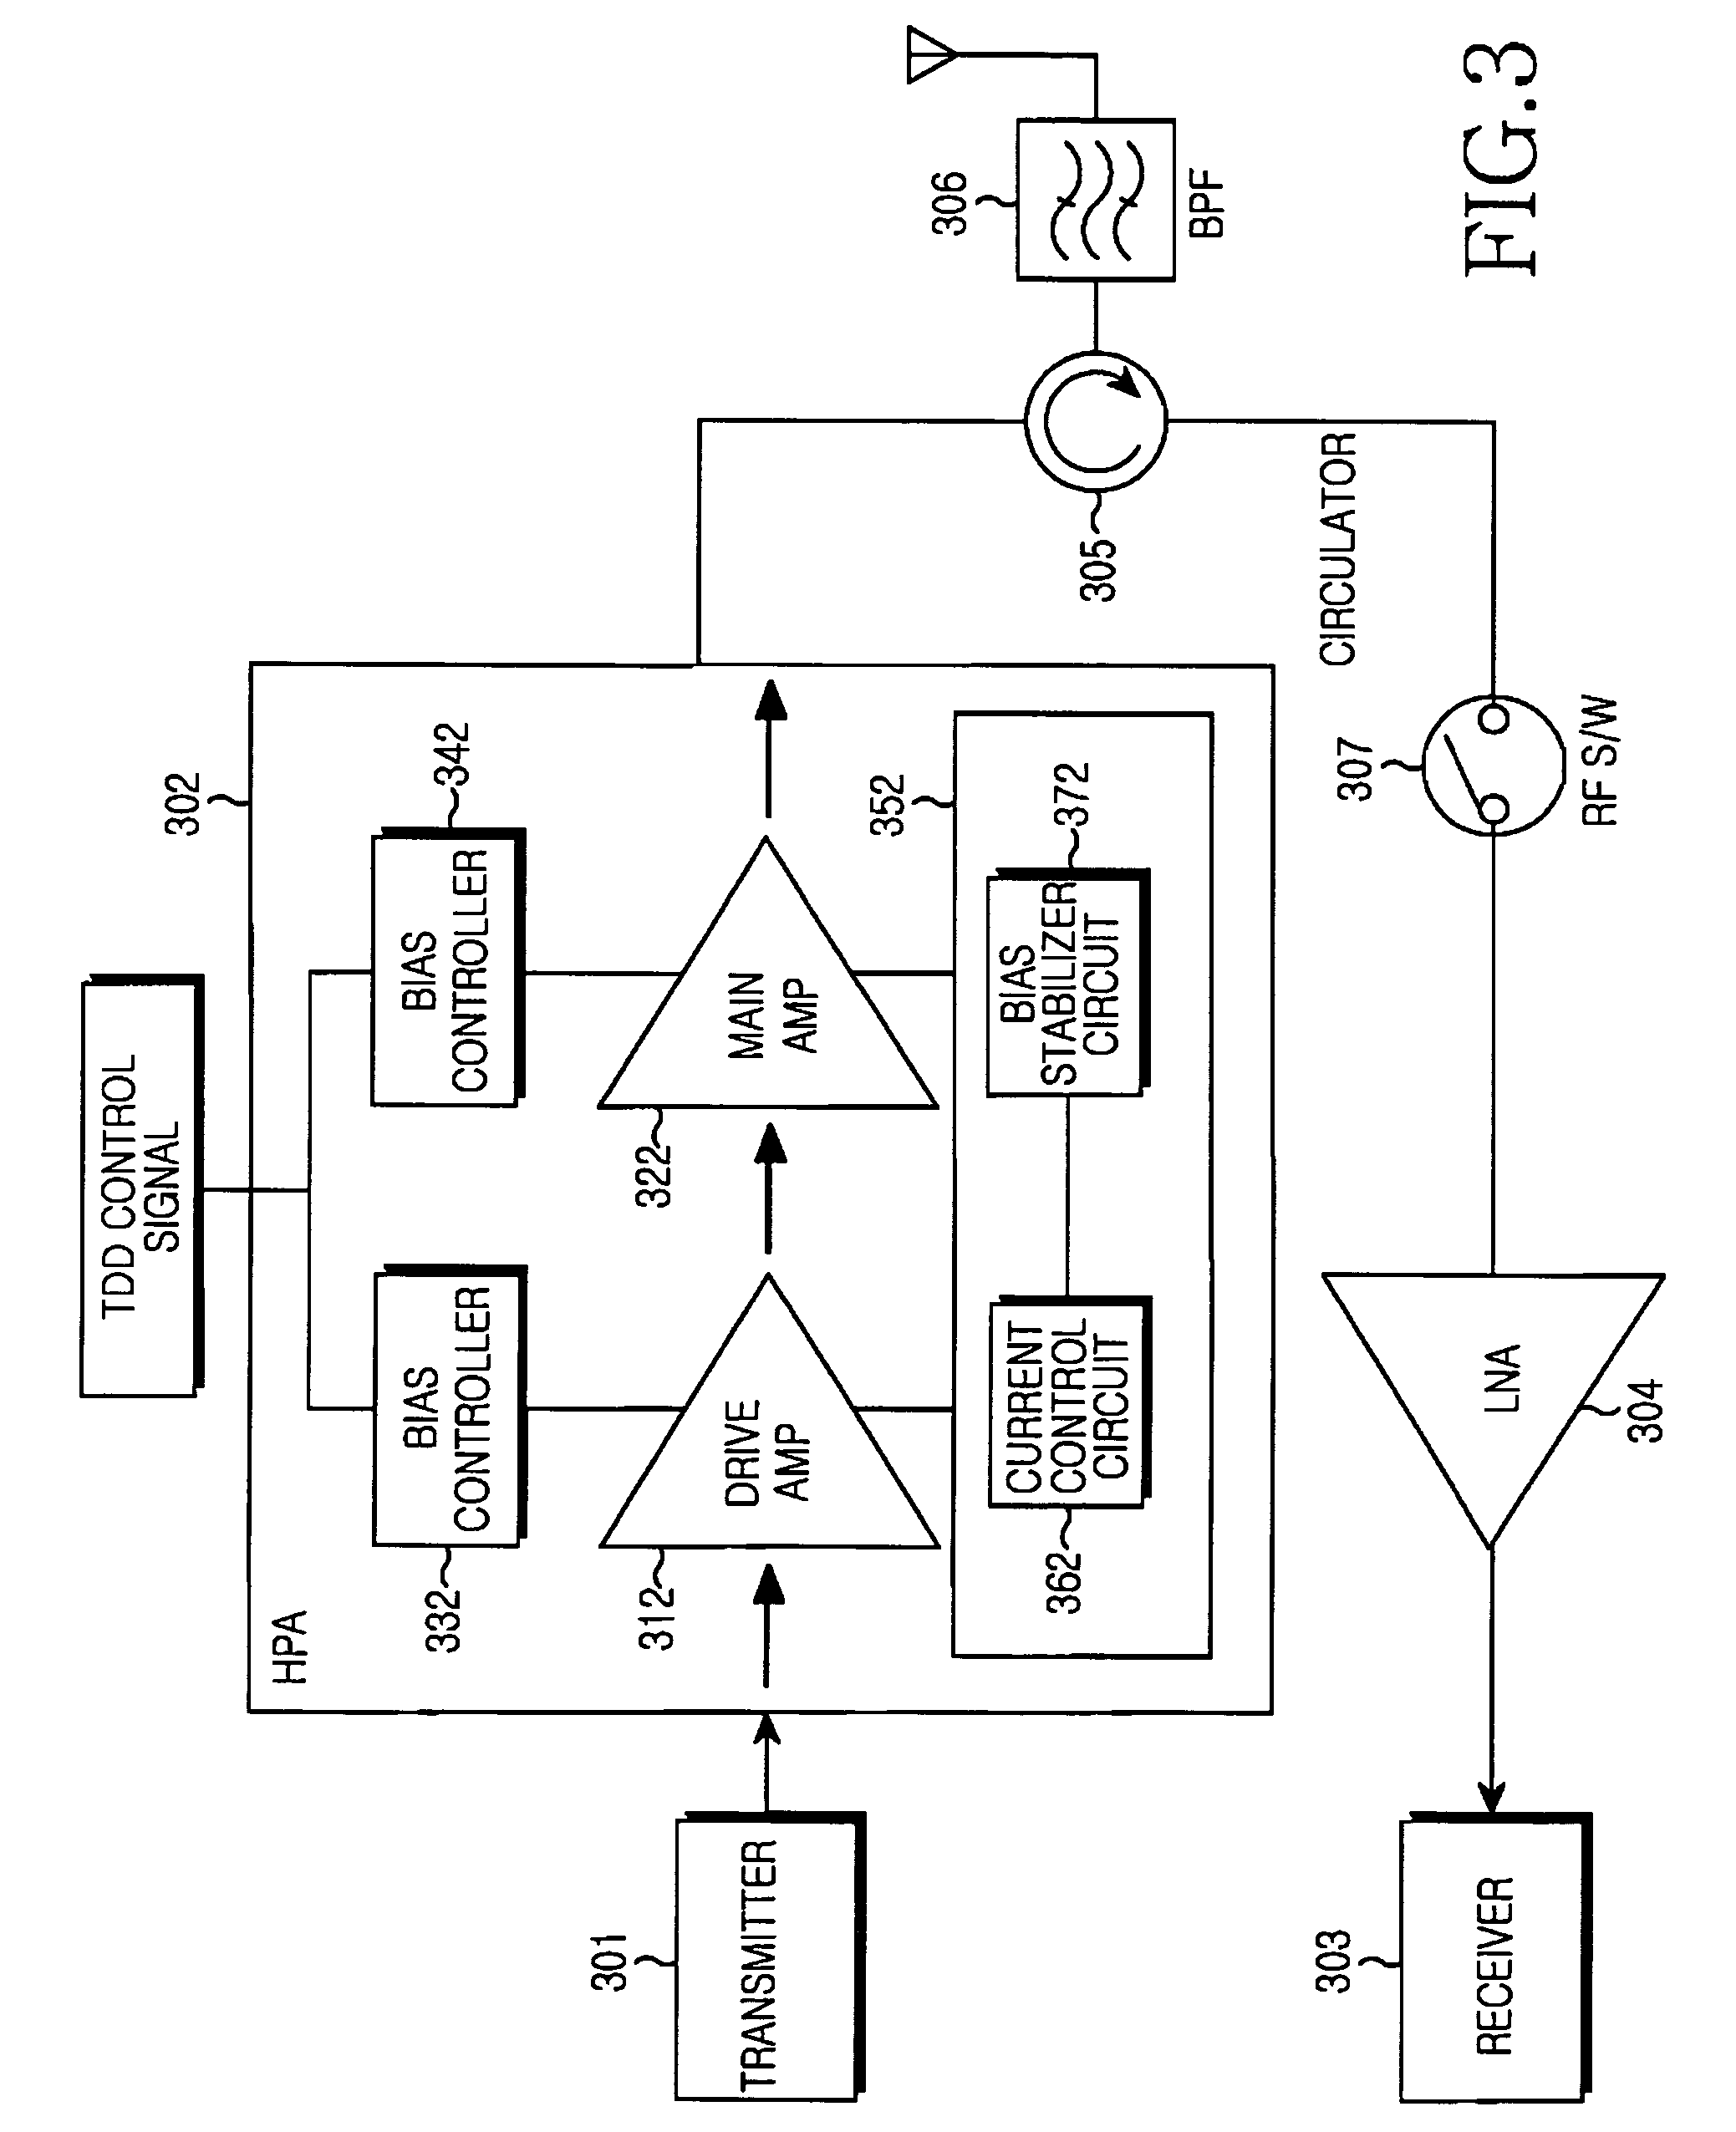 patent us7660564 - high-power amplifier apparatus for tdd wireless communication system